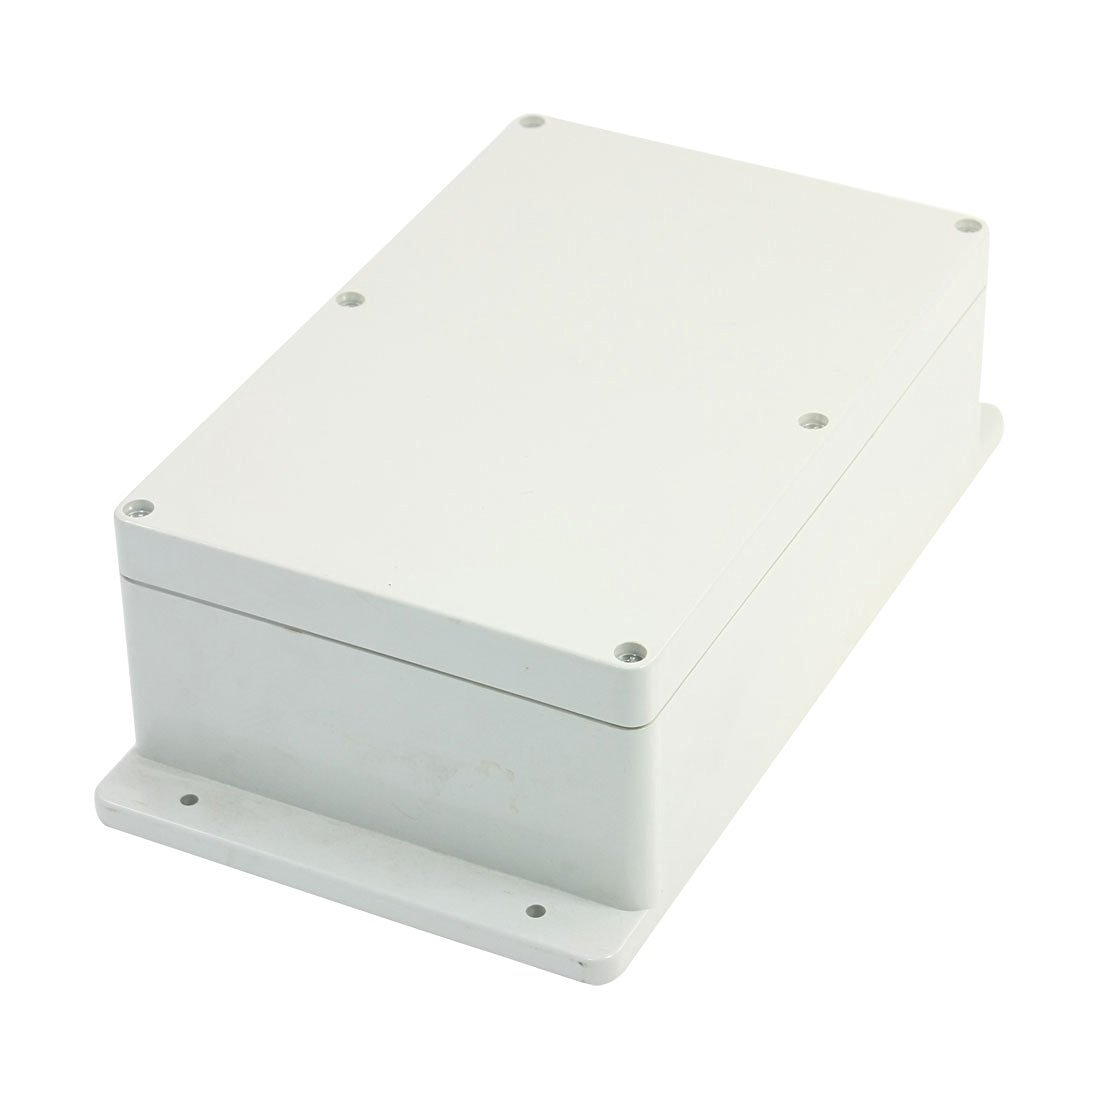 цена на 230mmx150mmx85mm Cable Connect Waterproof Plastic Case Junction Box